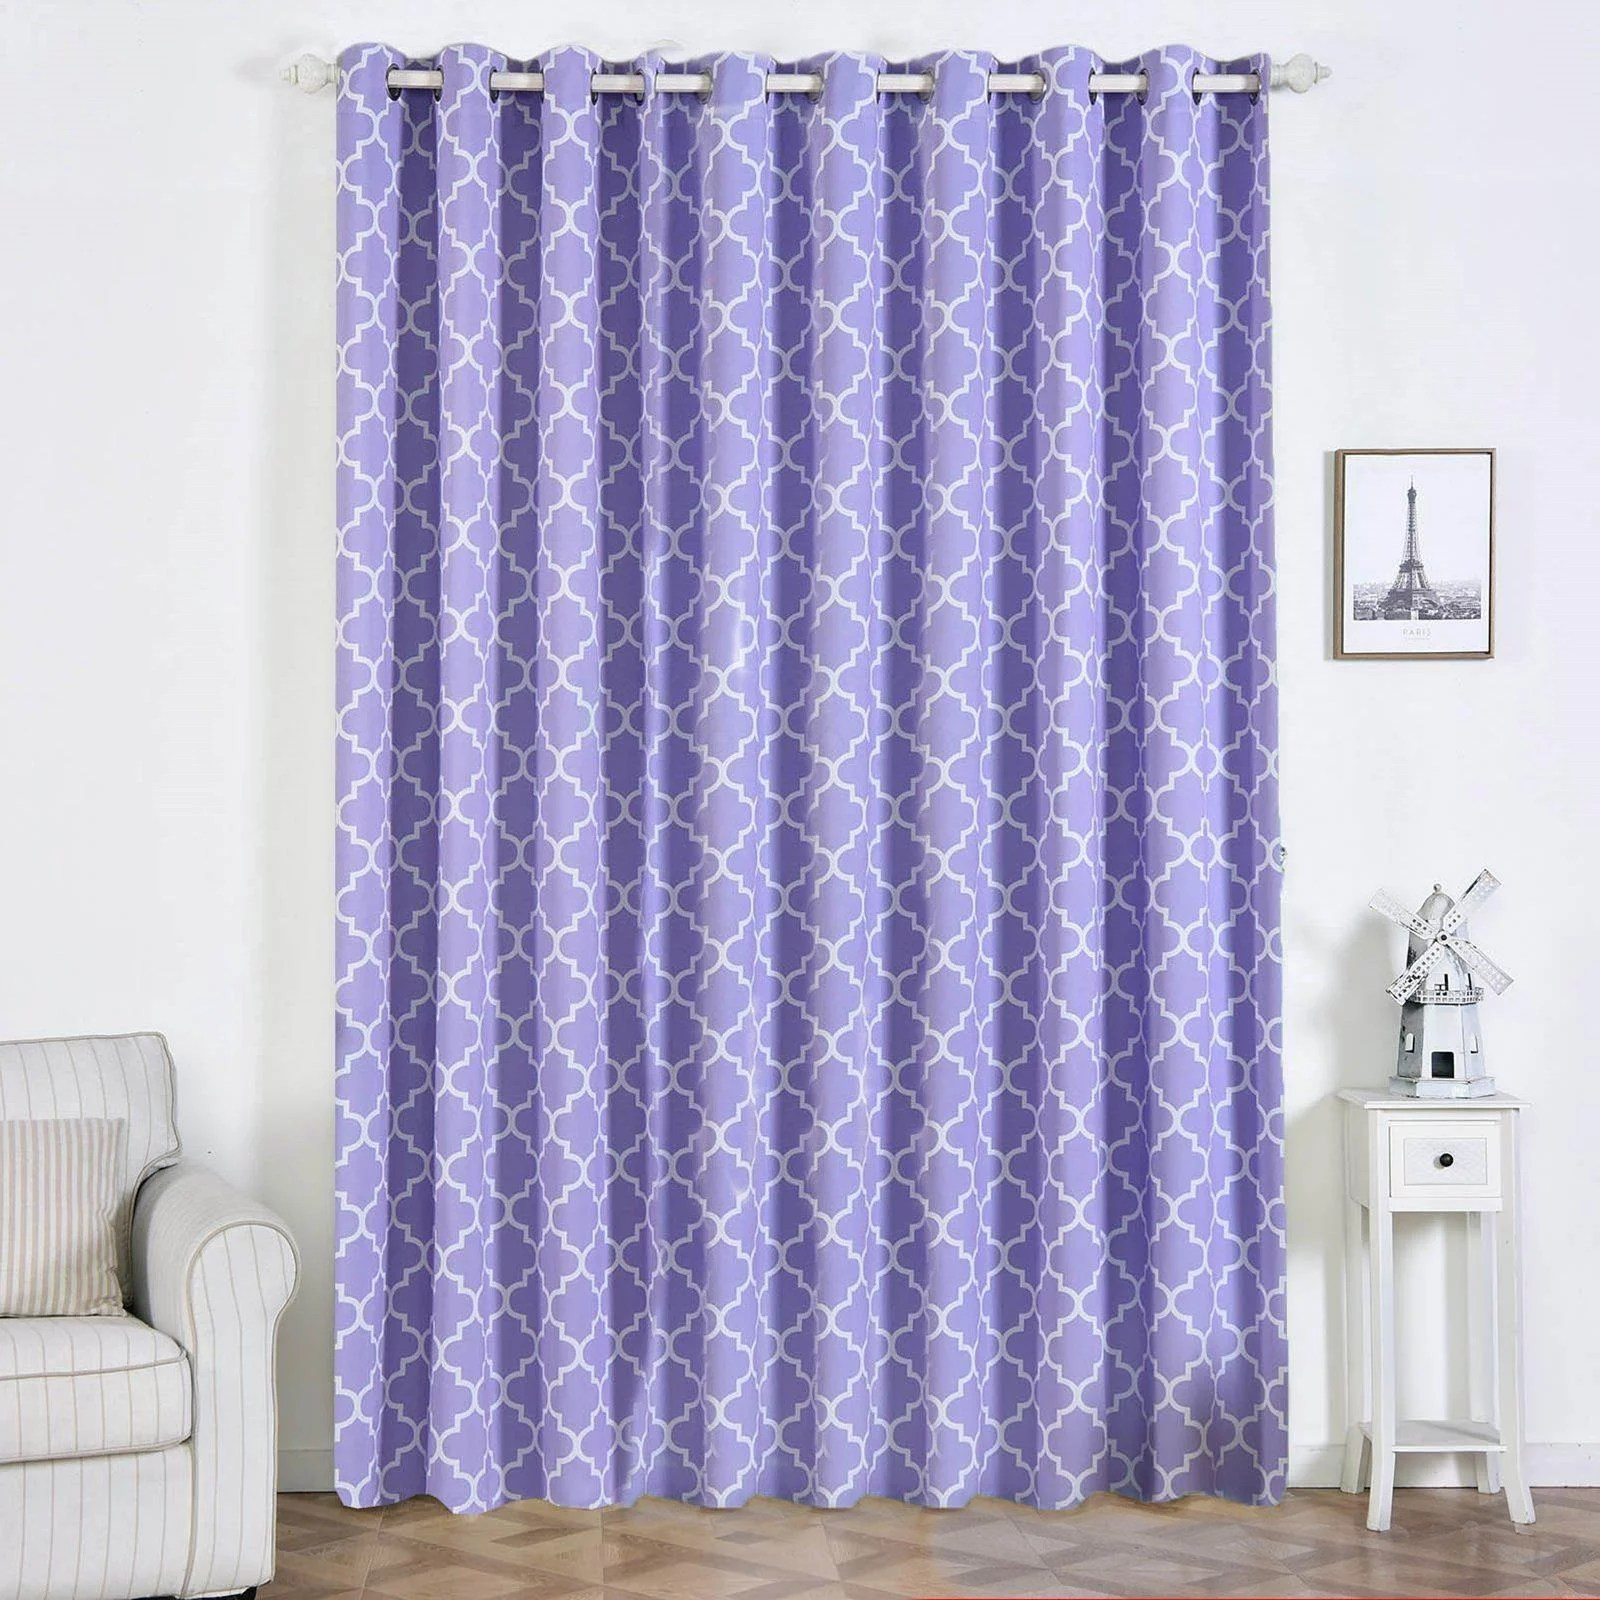 trellis curtain panels 2 packs white lavender blackout curtains 52 x 108 inch grommet curtains room darkening curtains with grommets